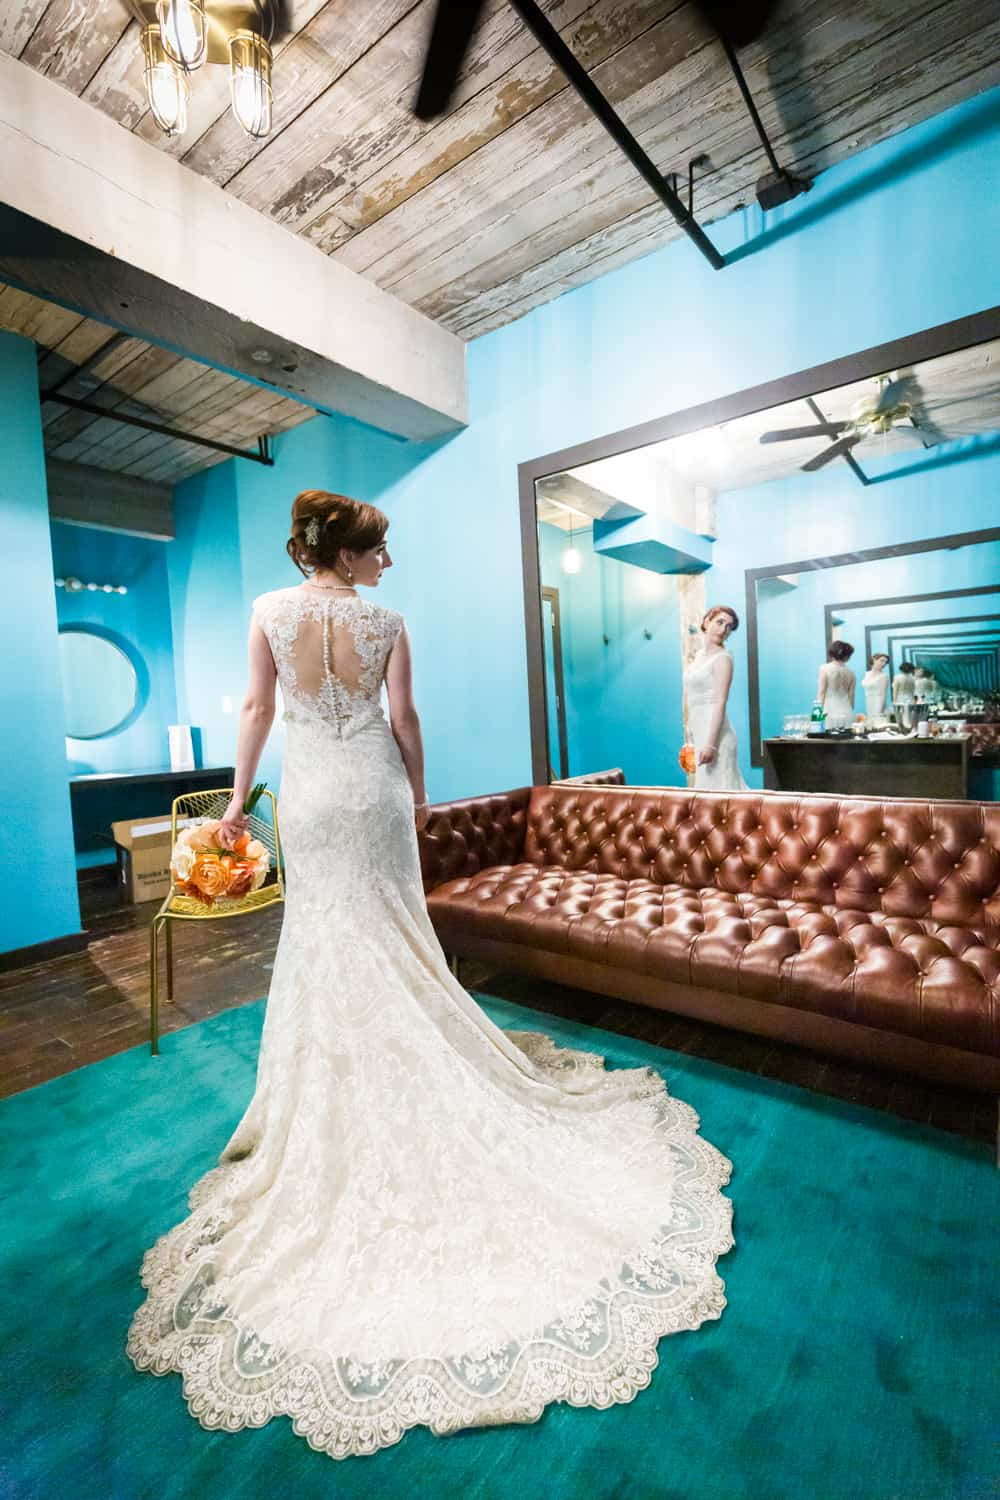 Bride with long train on dress reflected in mirror